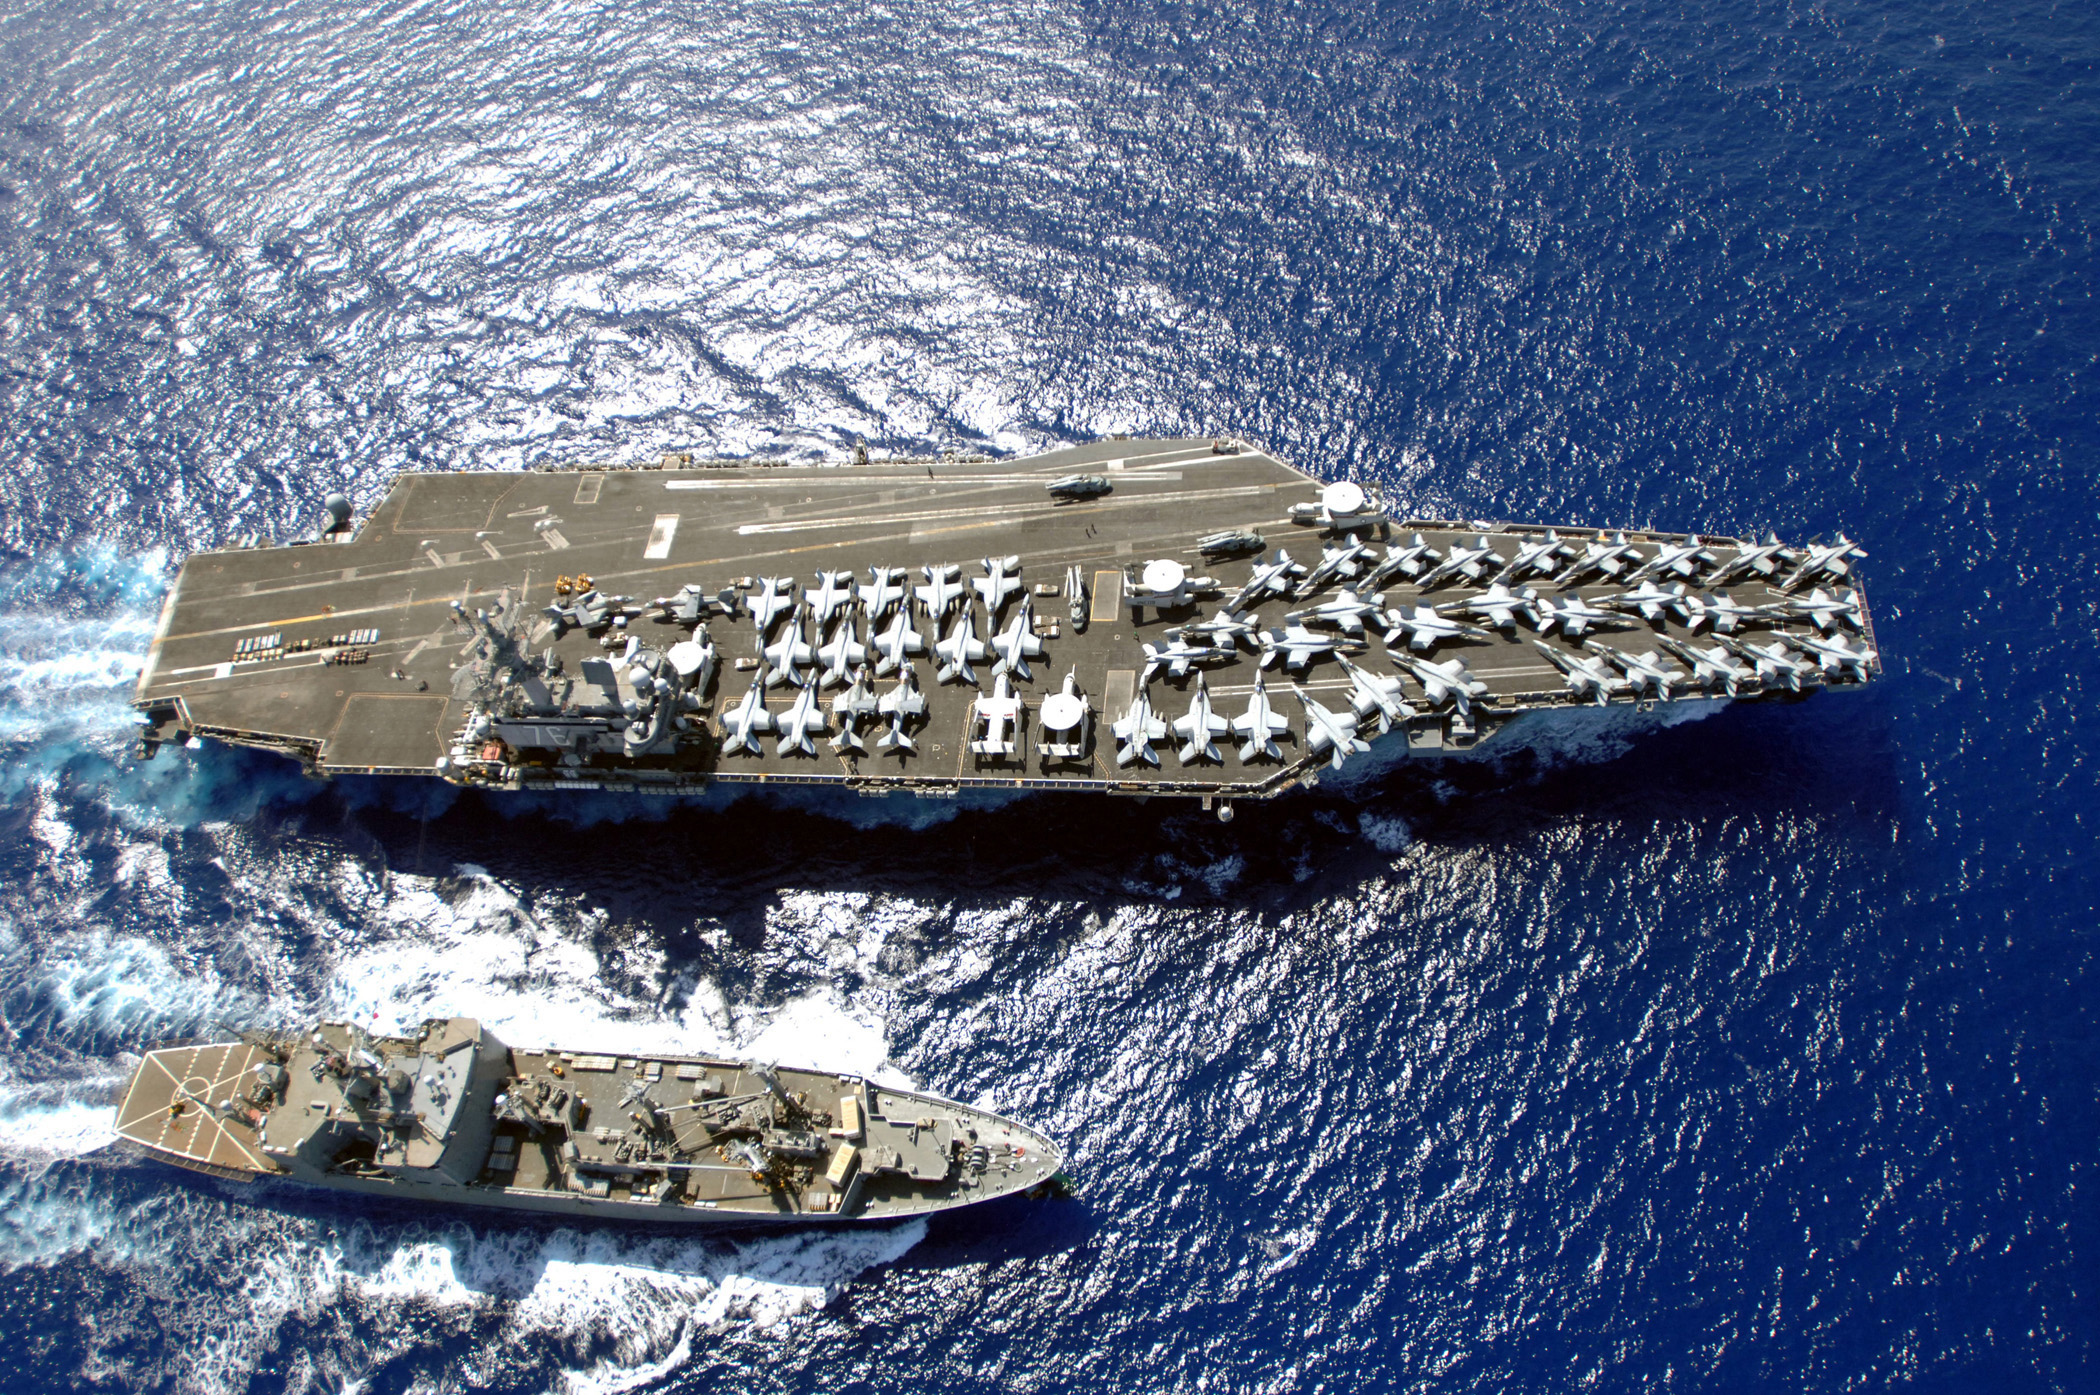 The_Nimitz-class_aircraft_carrier_USS_Ronald_Reagan_(CVN_76)_works_with_the_Military_Sealift_Command_ammunition_ship_USNS_Flint_(T-AE_32)_as_the_aircraft_carrier_unloads_all_of_its_weapons_signaling_the_end_of_070406-N-HX866-008.jpg